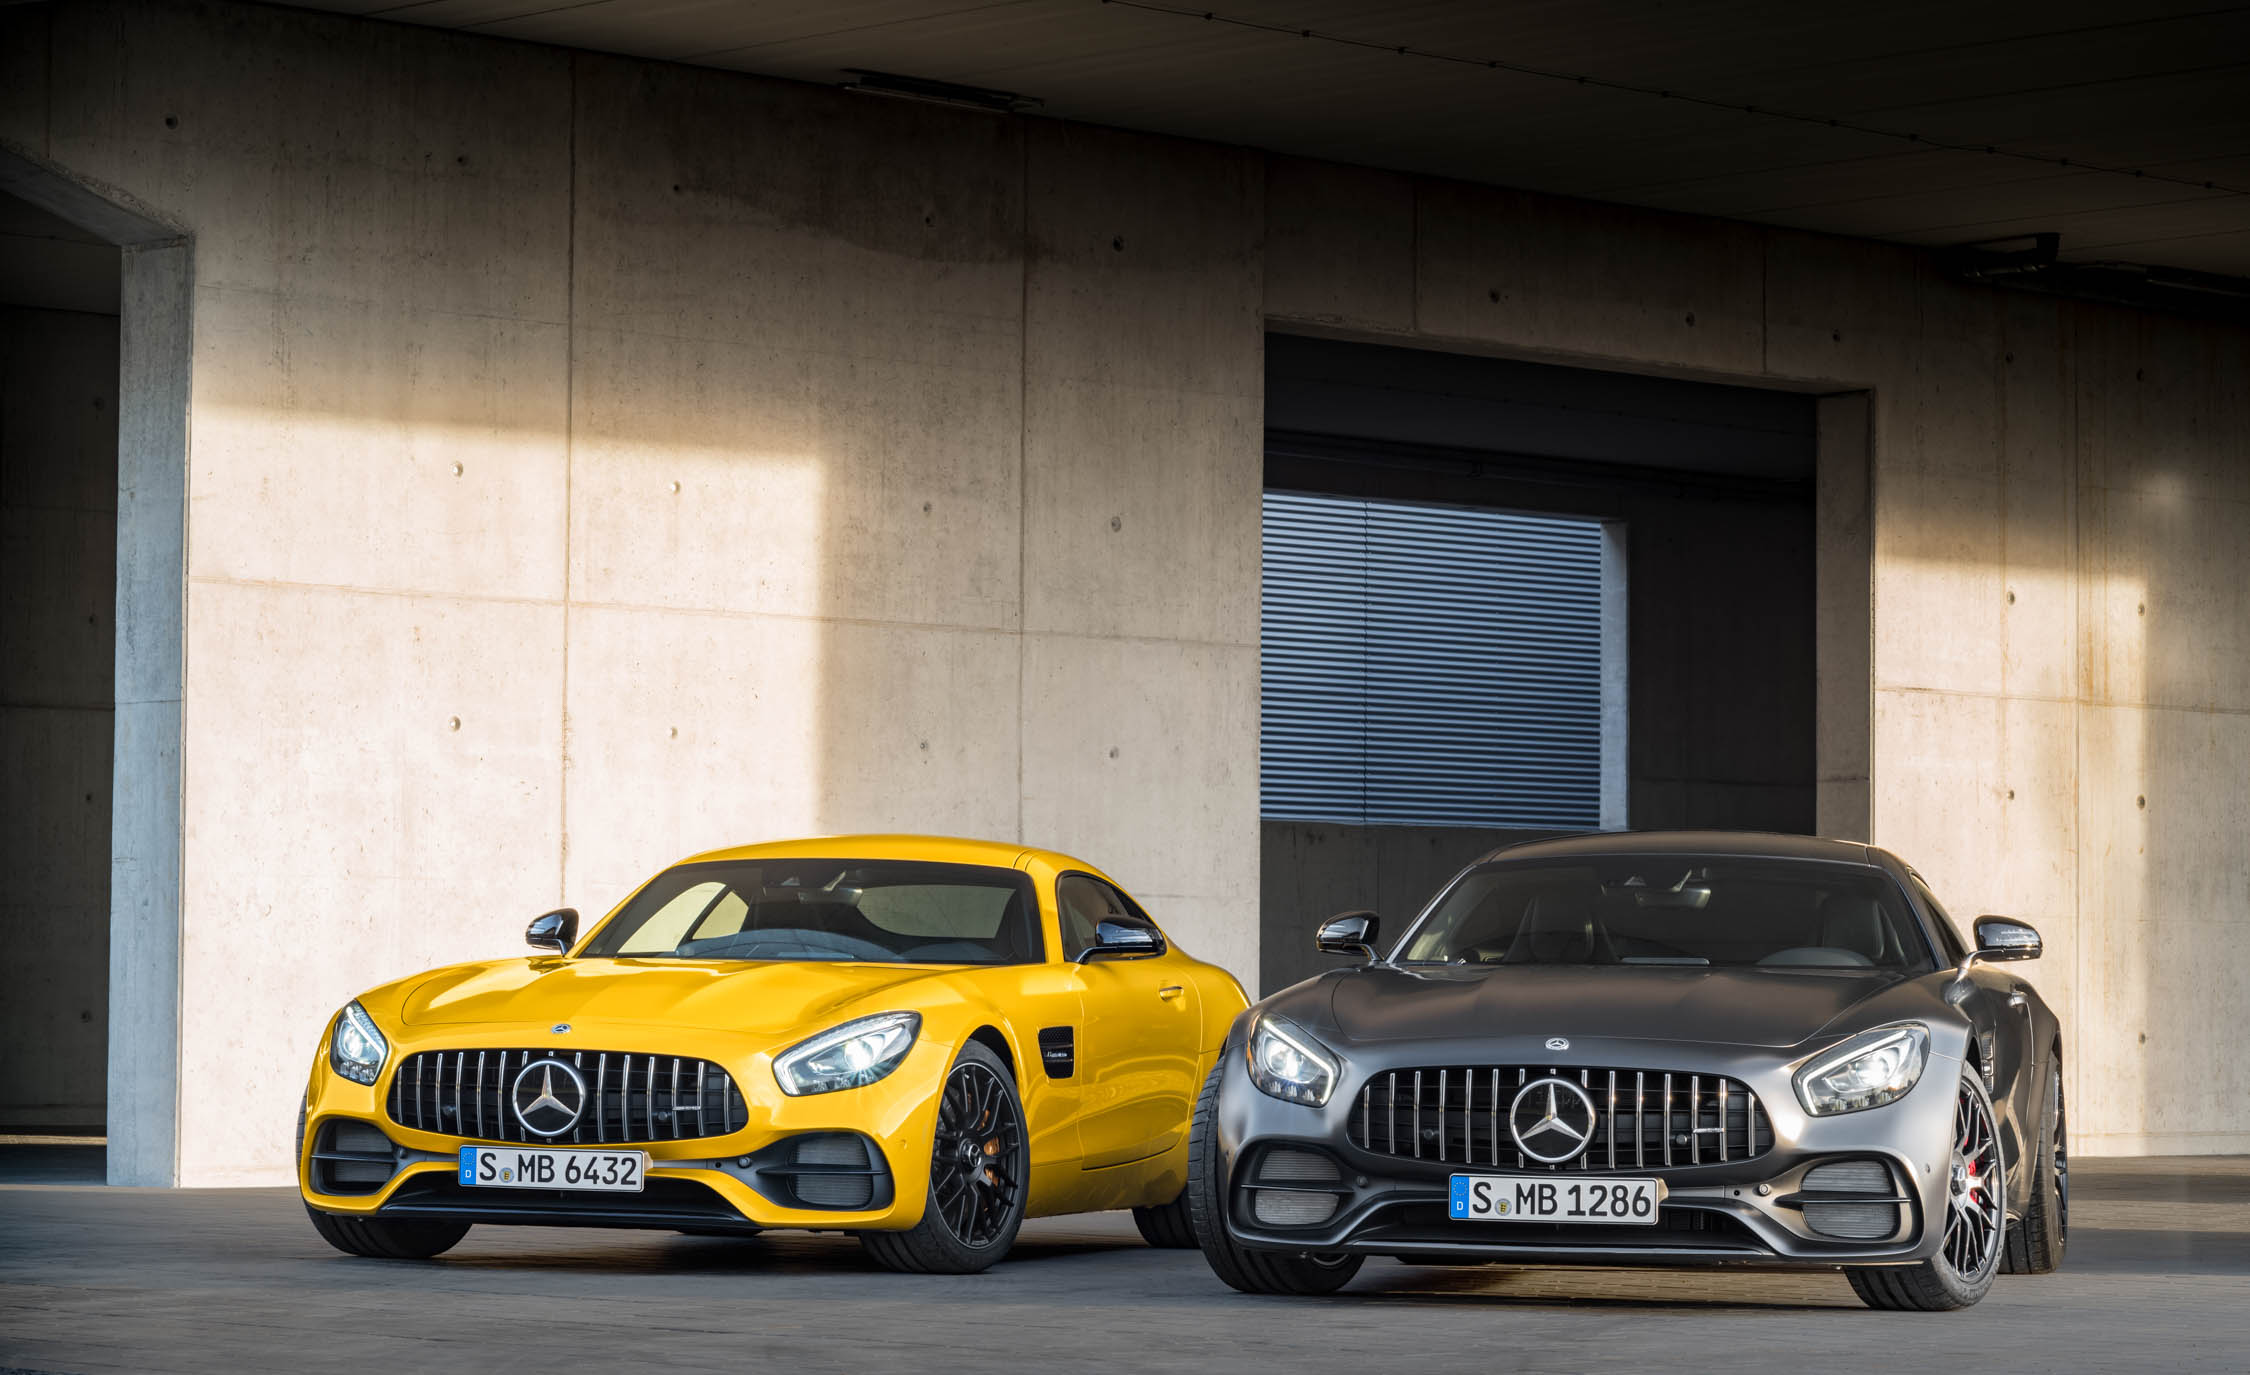 2018 Mercedes Amg Gt C And 2018 Mercedes Amg Gt S (View 21 of 23)